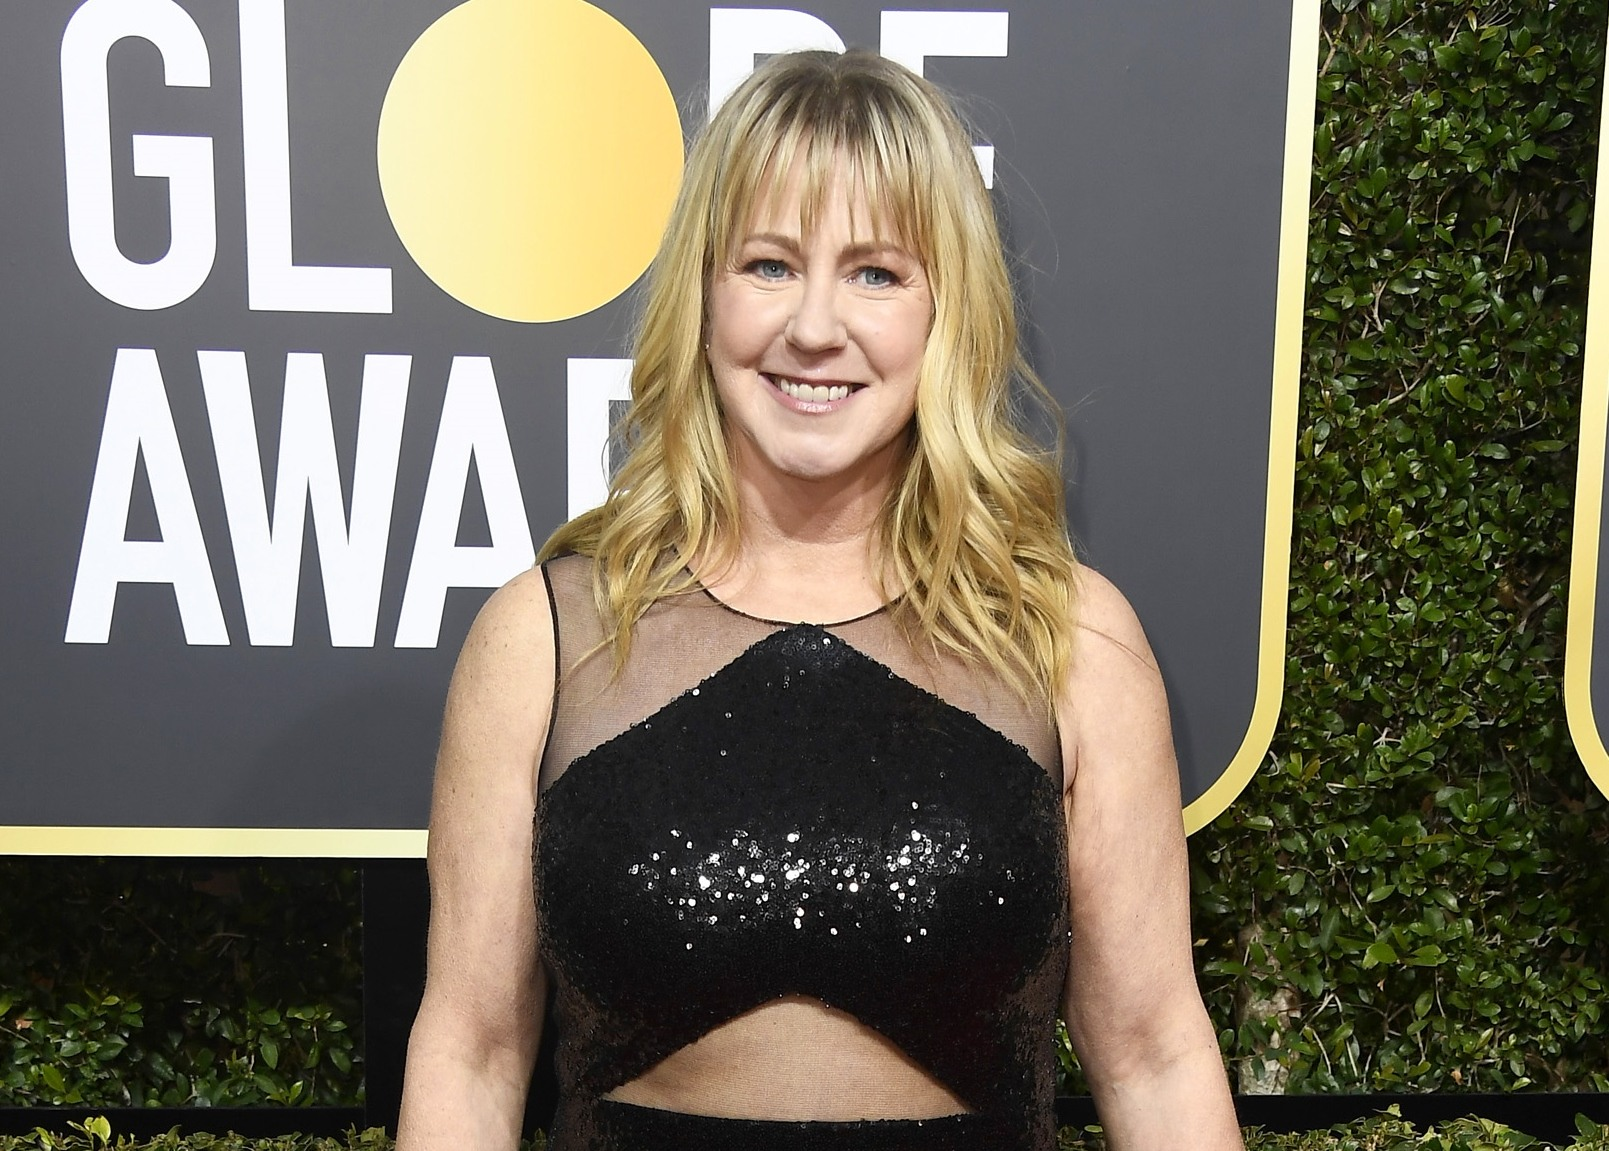 Tonya Harding at the Golden Globes